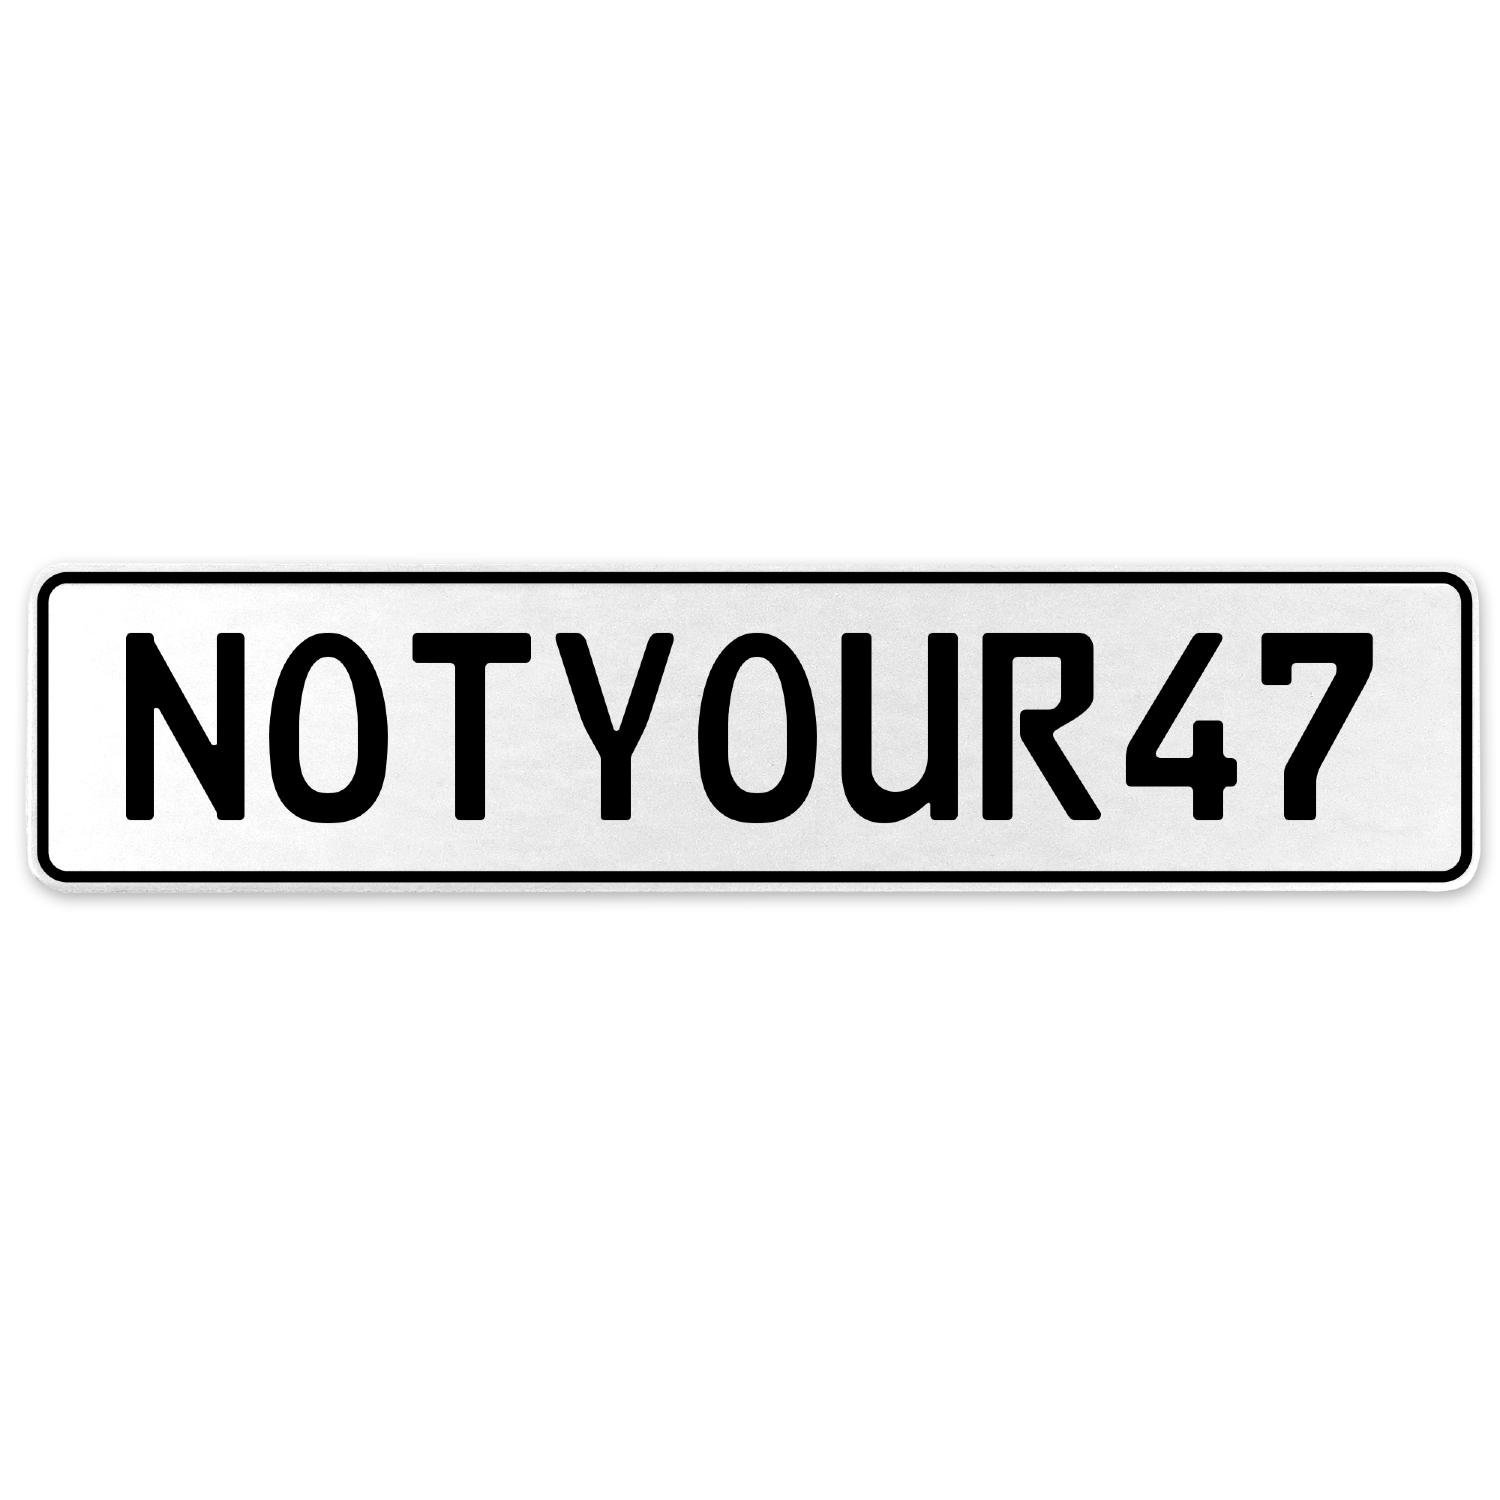 Vintage Parts 555436 NOTYOUR47 White Stamped Aluminum European License Plate